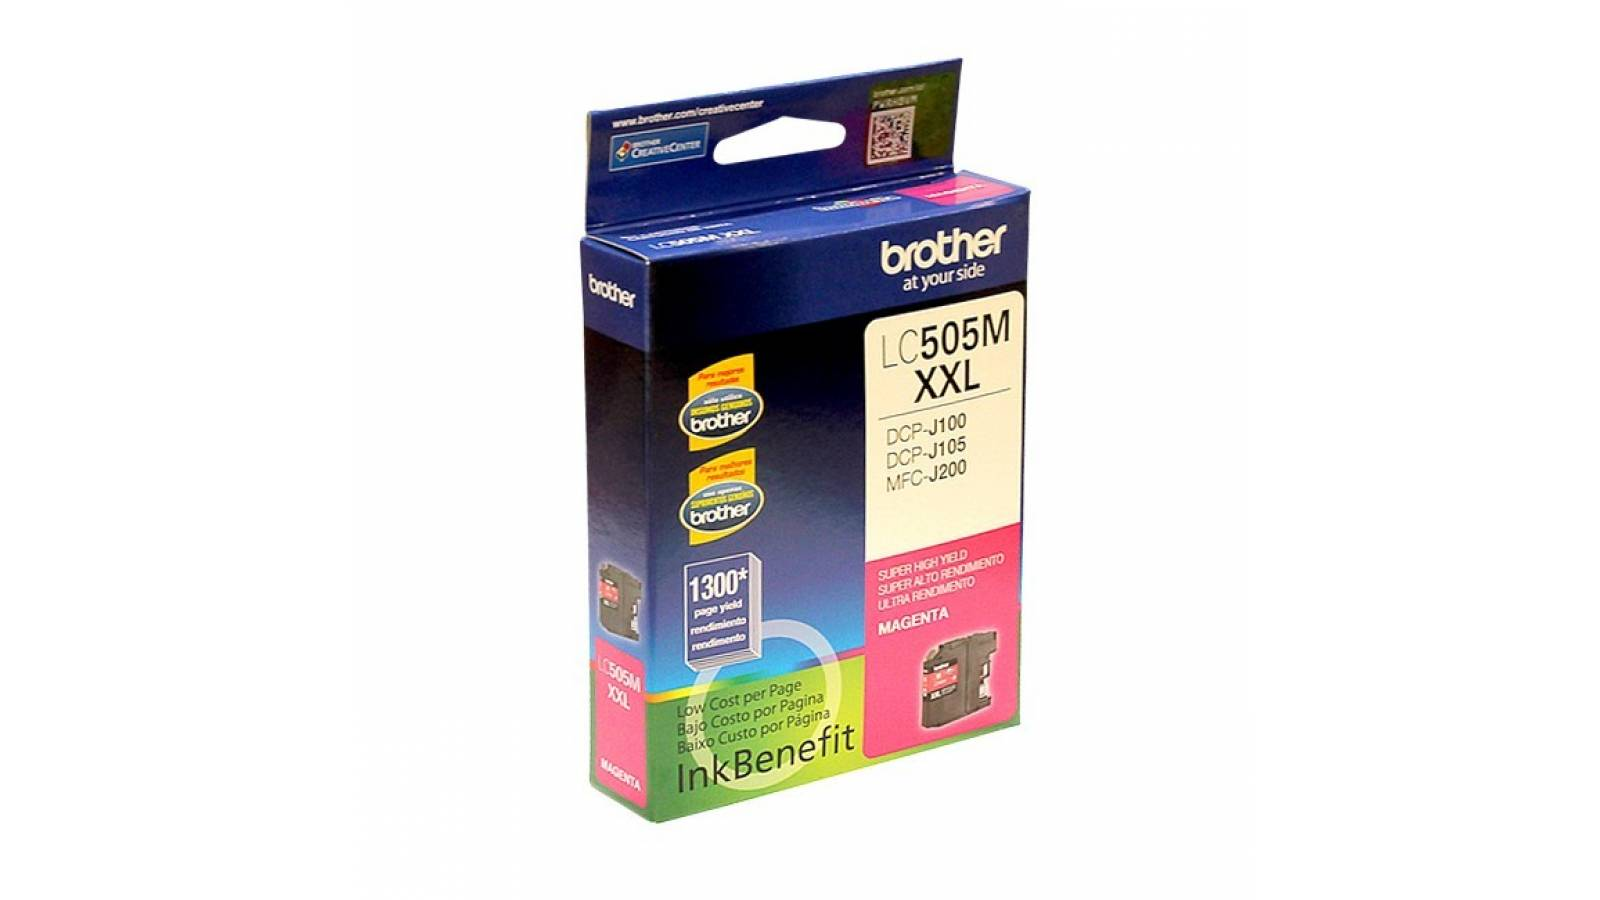 Cartucho de tinta Brother LC-505M